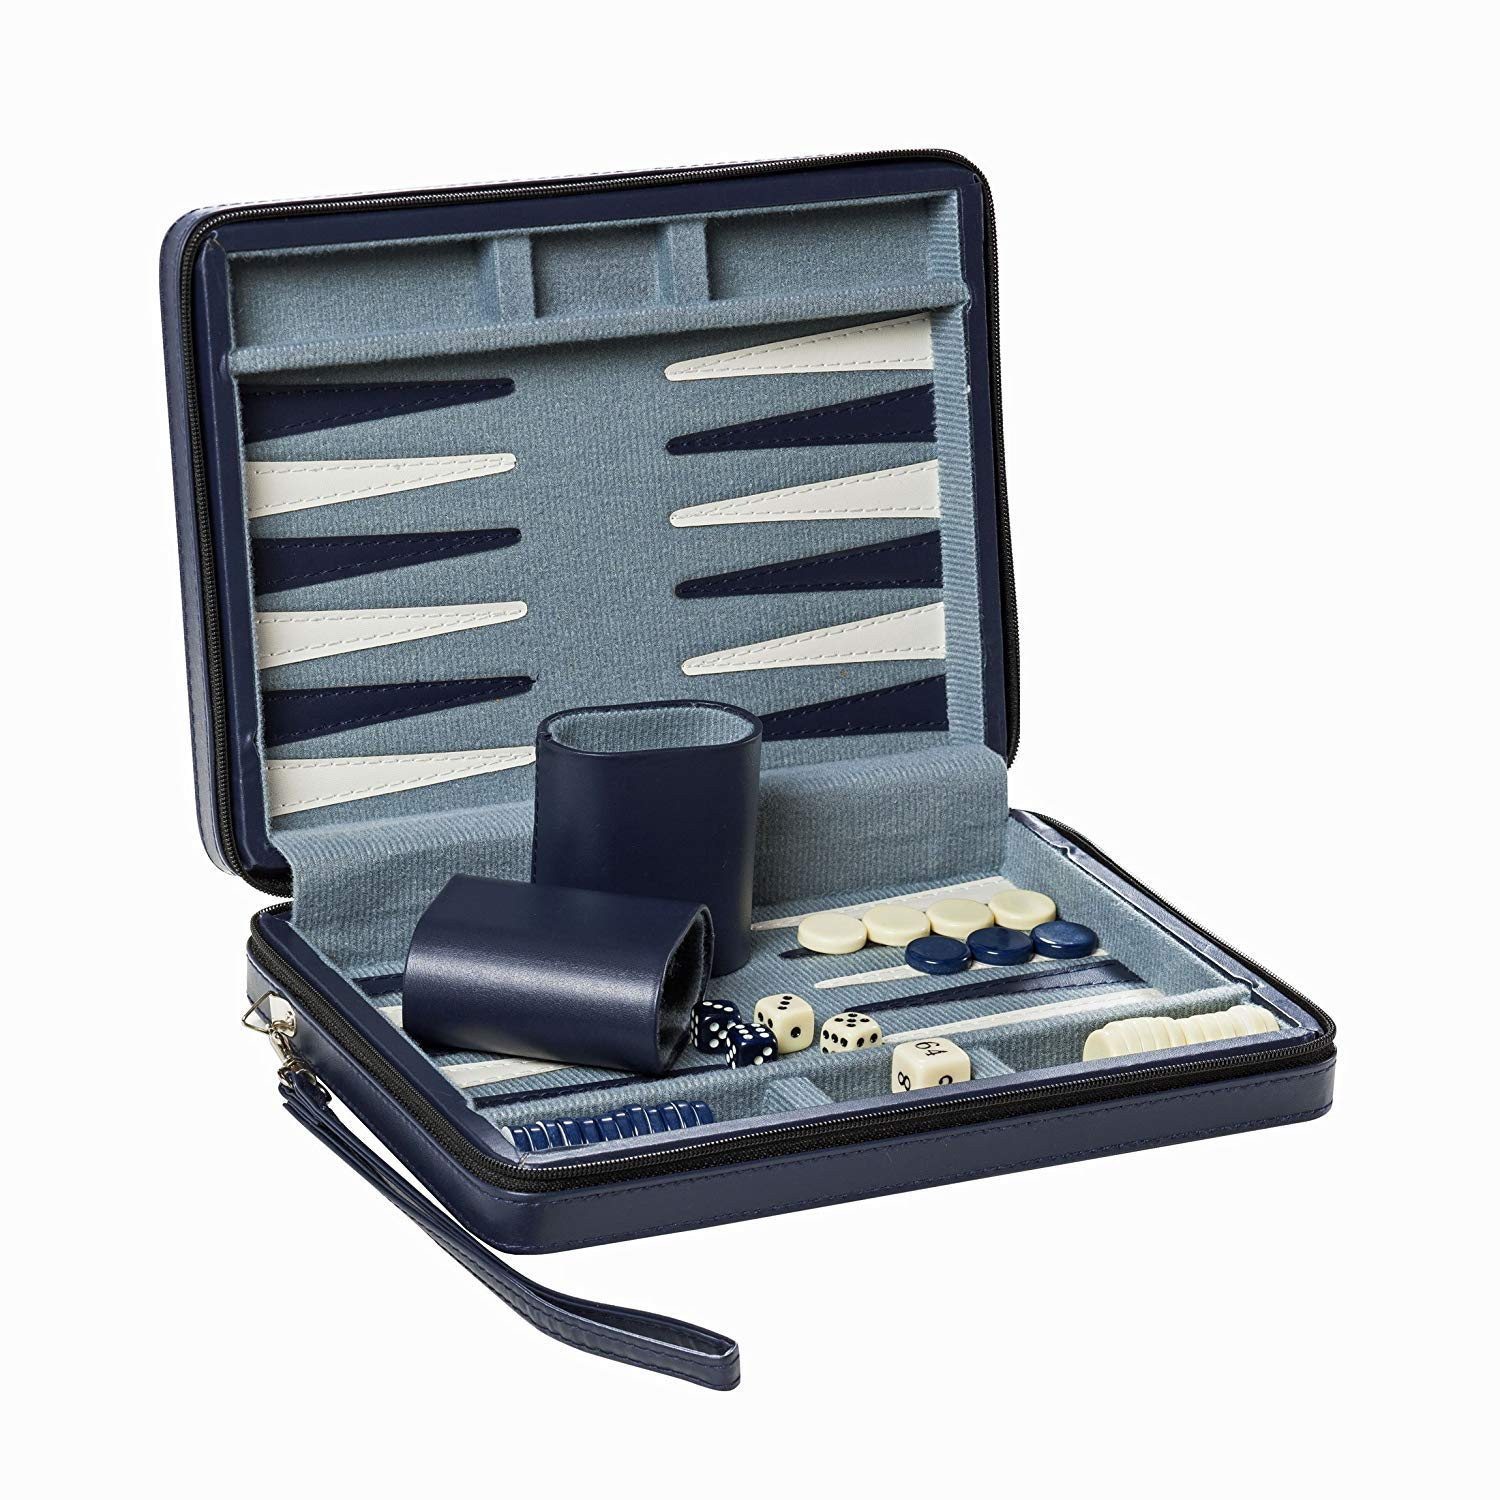 Wood Expressions WE Games Blue Magnetic Backgammon Set with Carrying Strap - Travel Size by WE Games (Image #4)